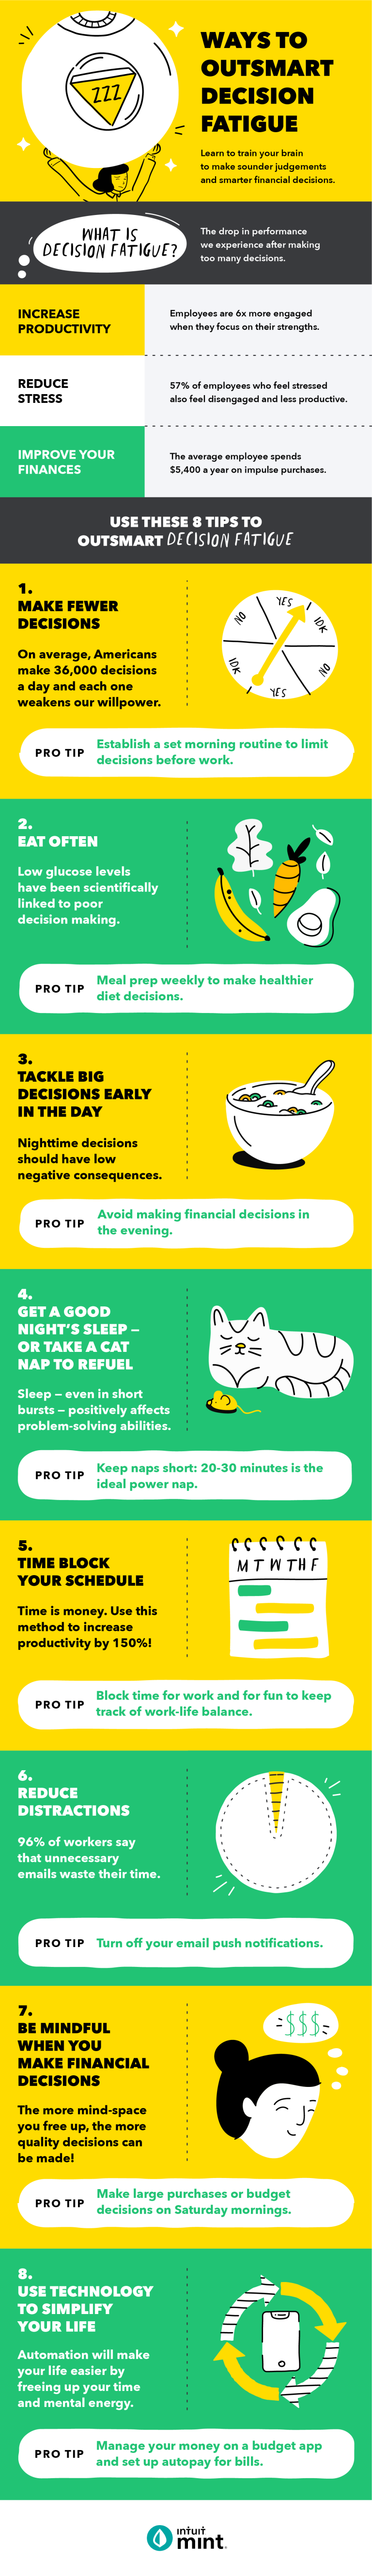 8-Ways-to-Outsmart-Decision-Fatigue@2x.png